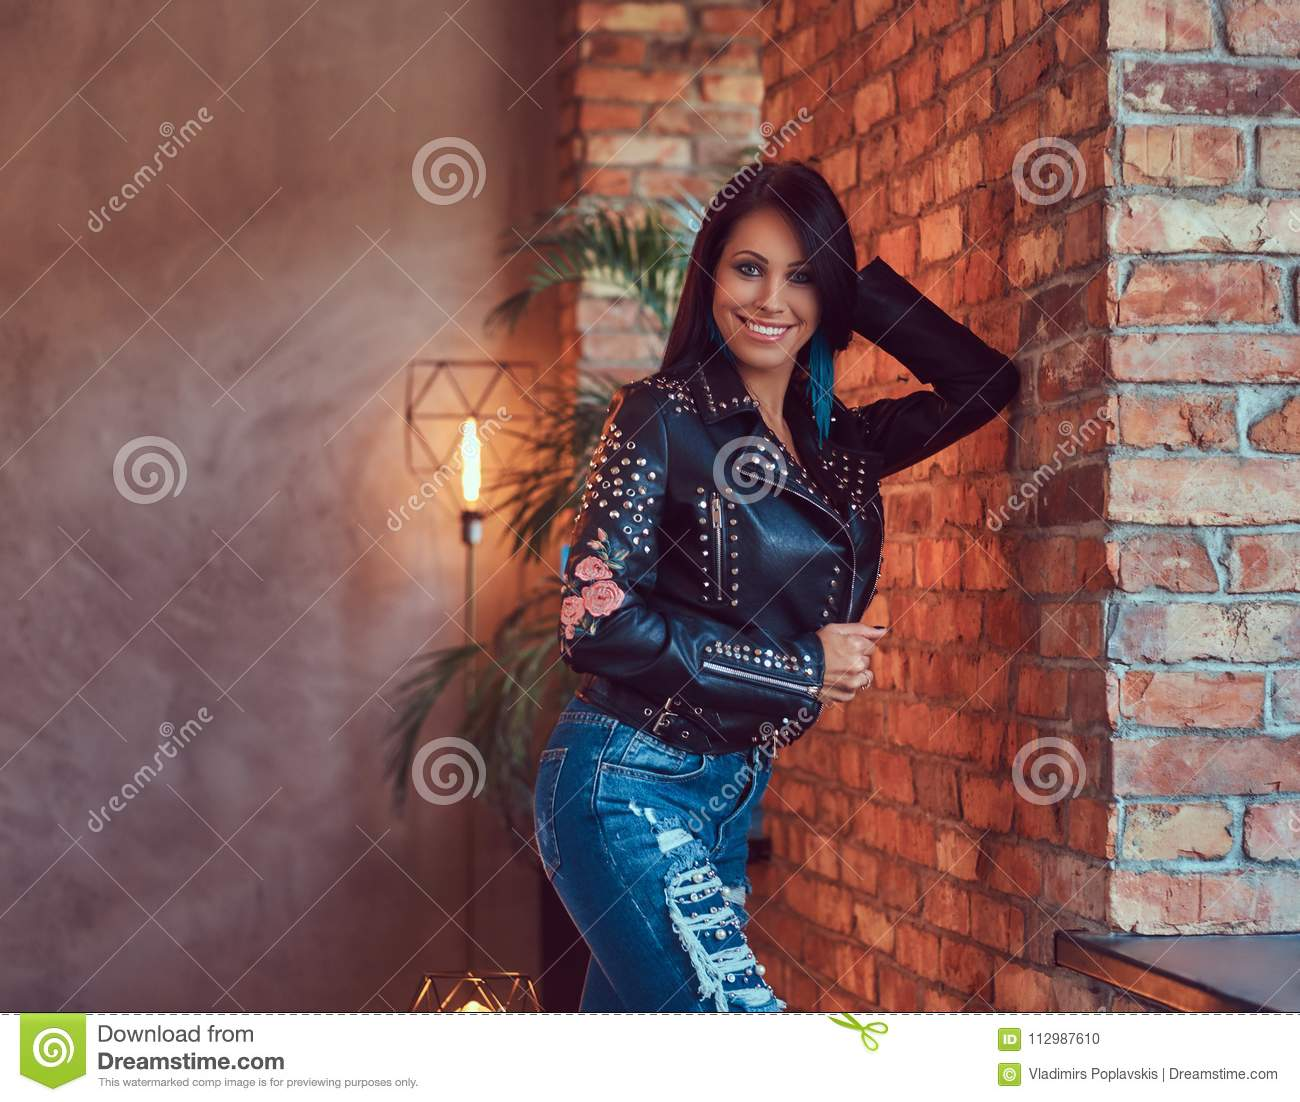 sensual brunette posing in stylish leather jacket and jeans leaning against a brick wall.